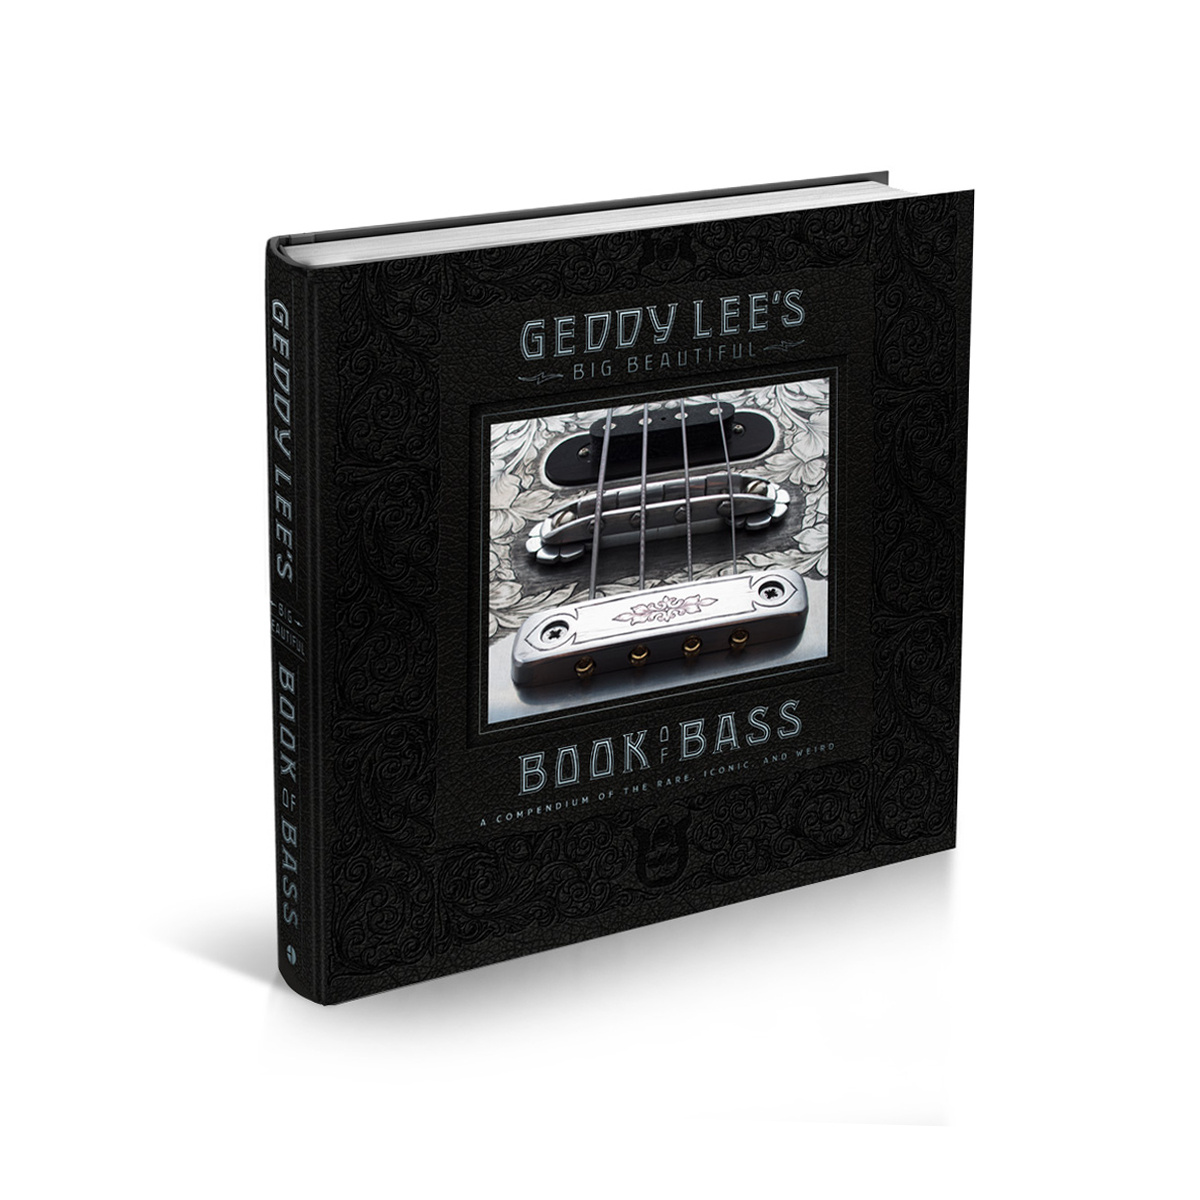 Ultra Limited Edition - Geddy Lee's Big Beautiful Book of Bass - Autographed